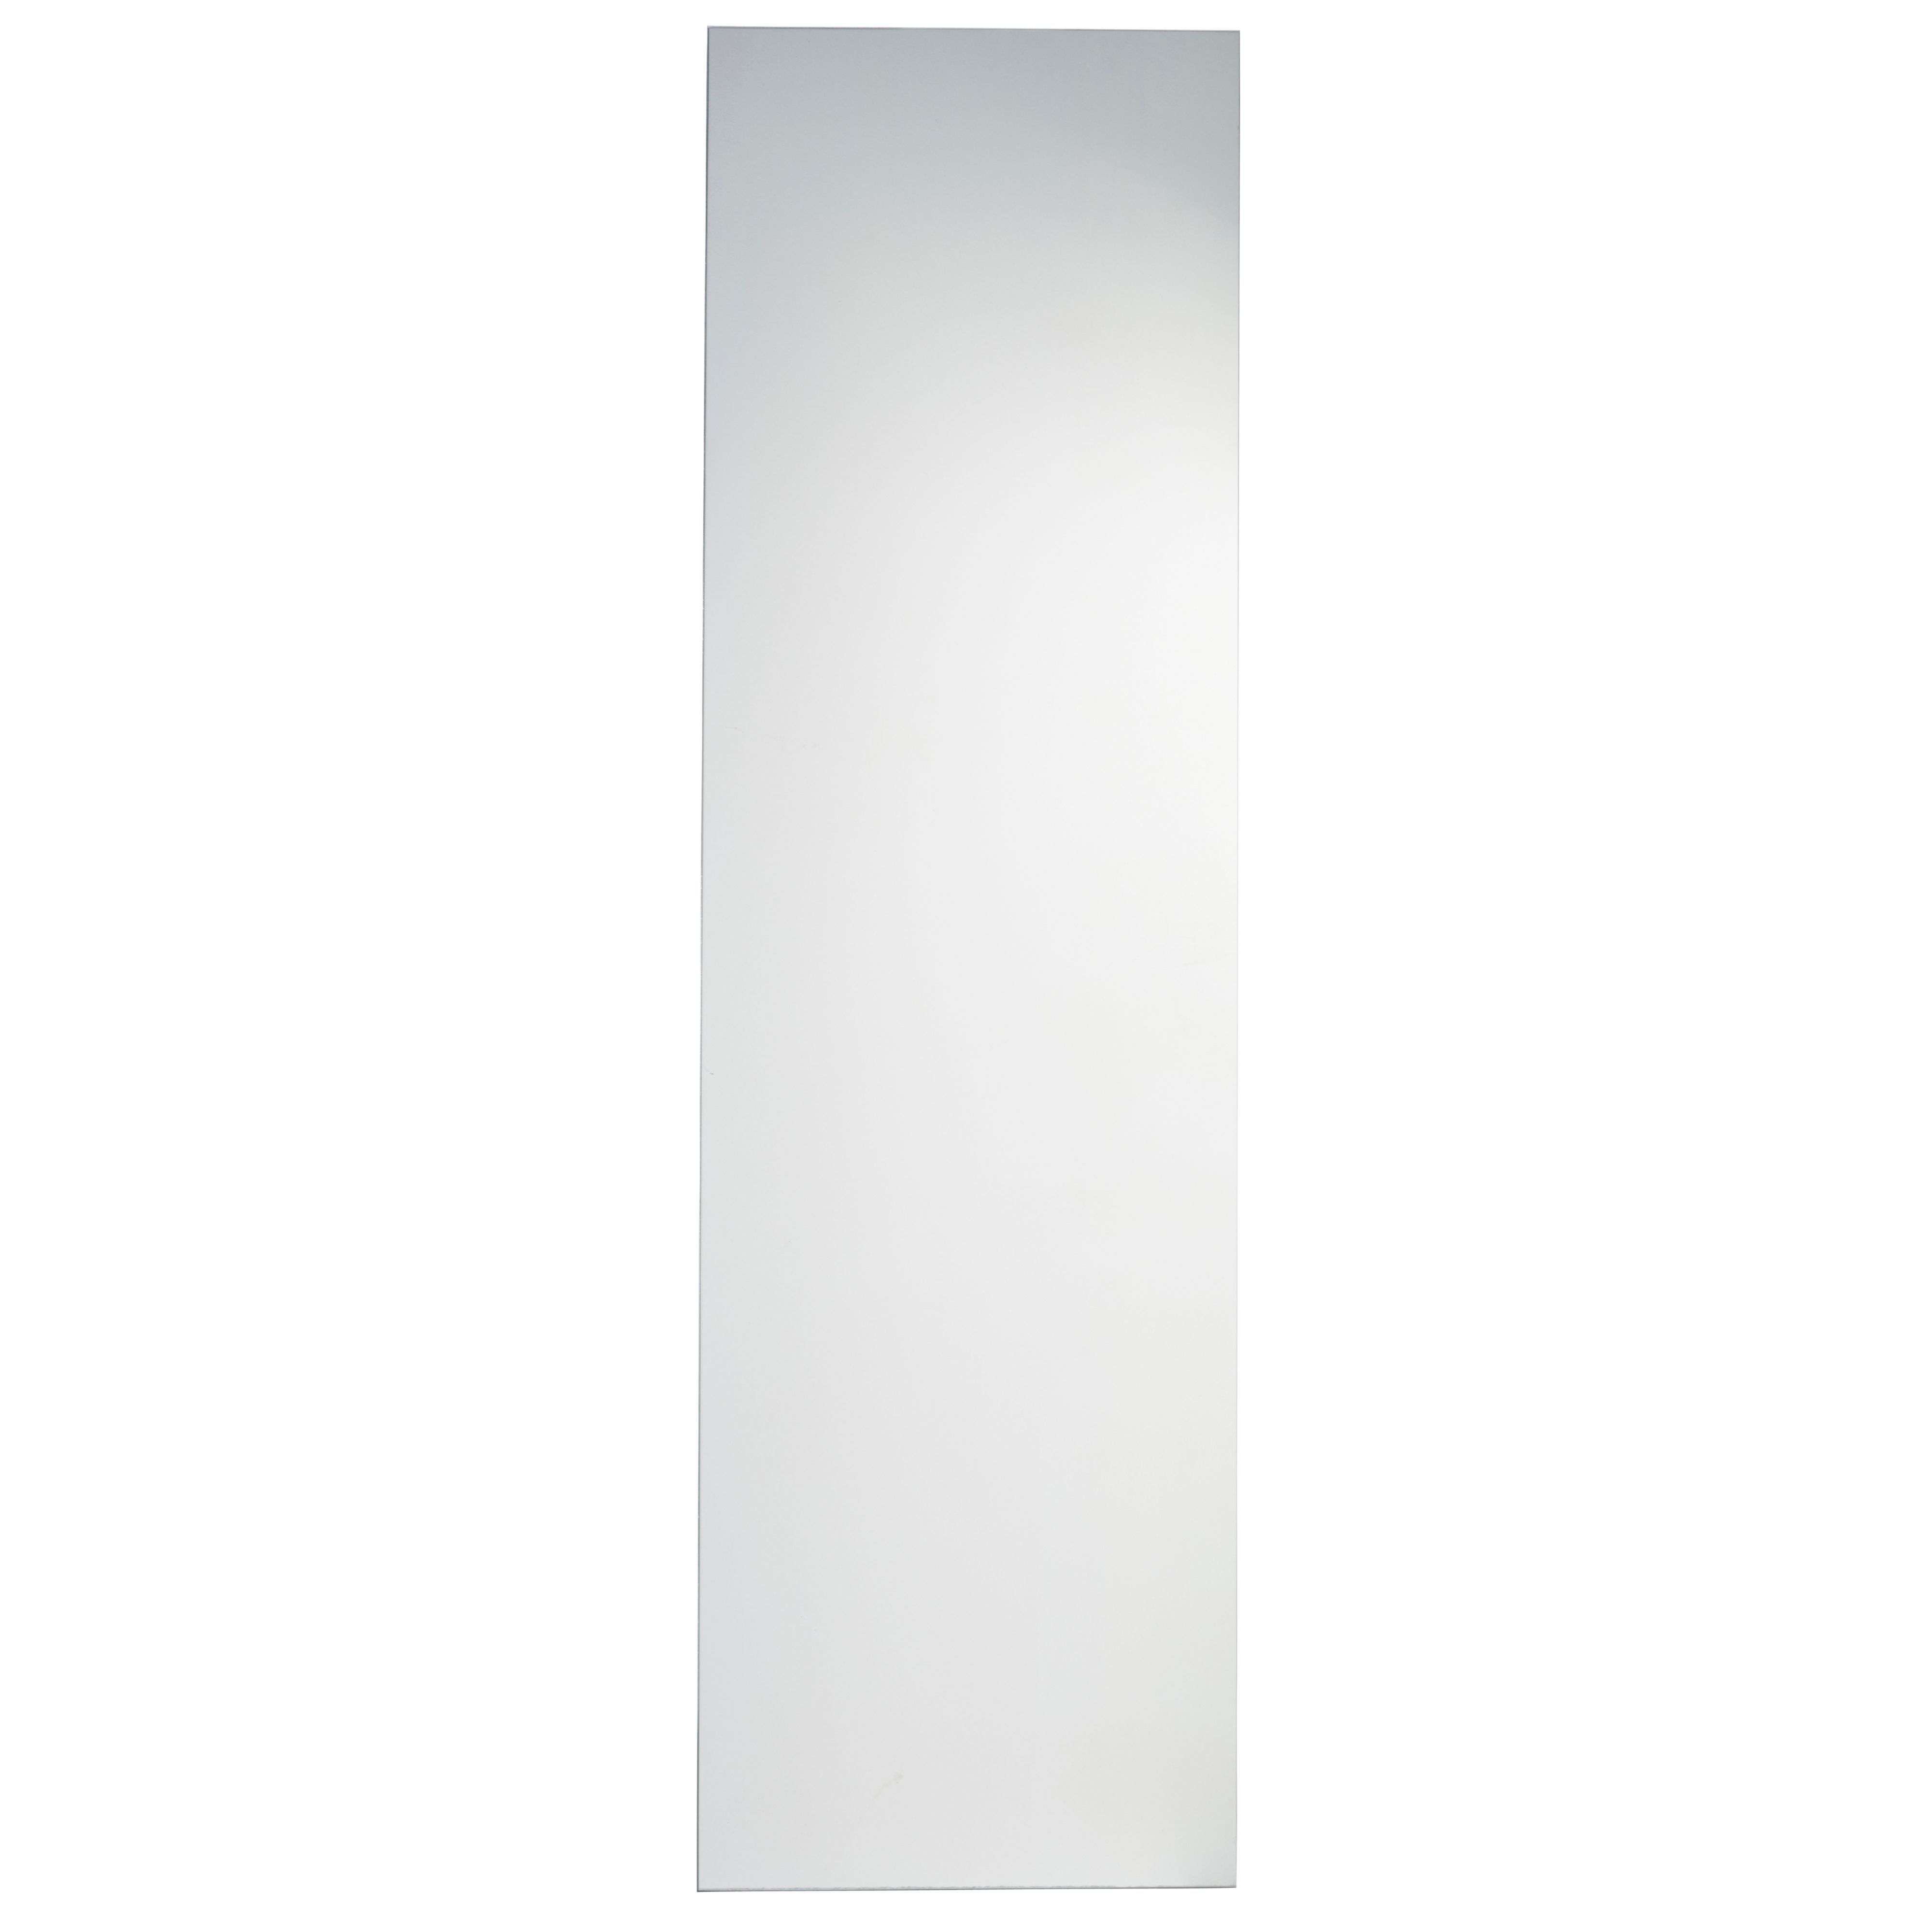 Cooke and lewis bathroom mirrors - Cooke Lewis Dunnet Rectangular Mirror W 400mm H 1400mm